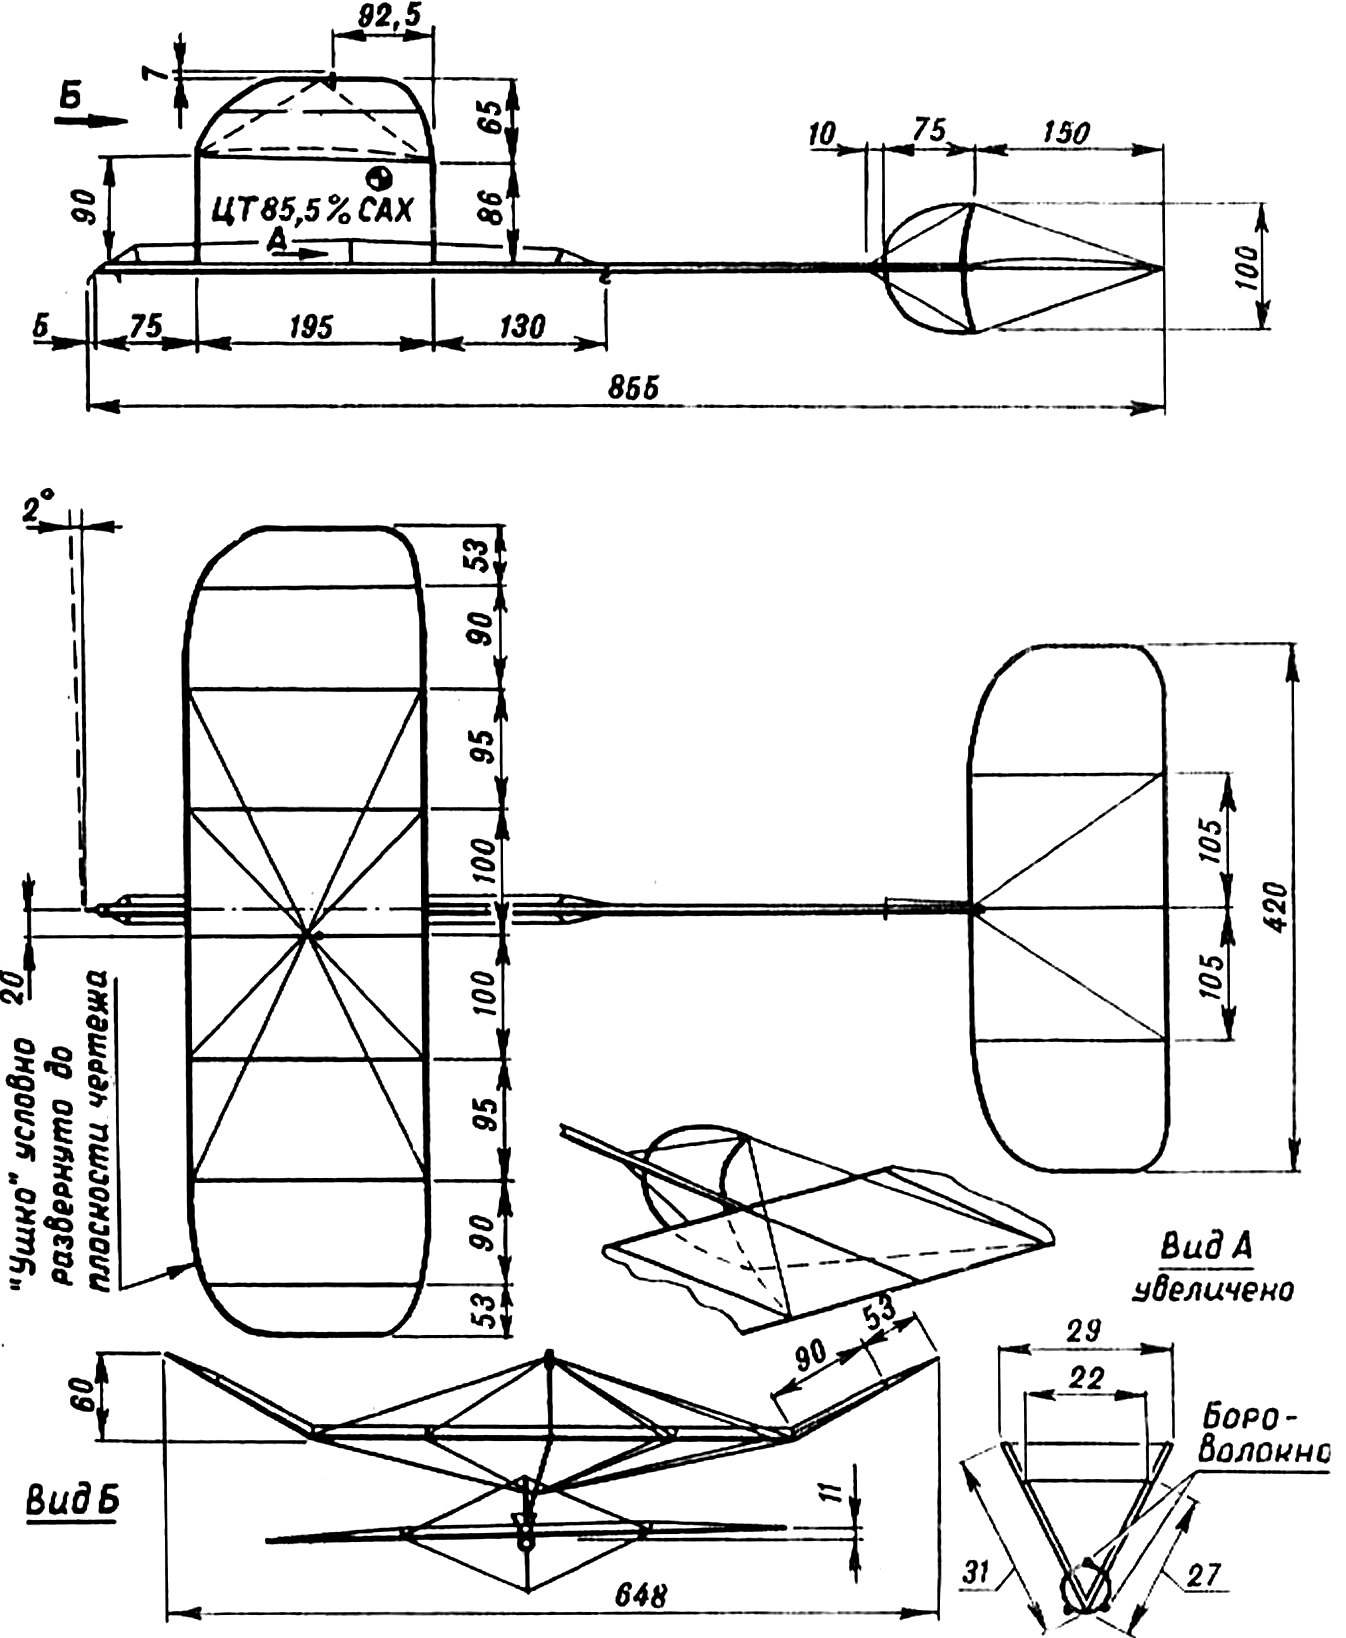 Fig. 1. Model in the collection.